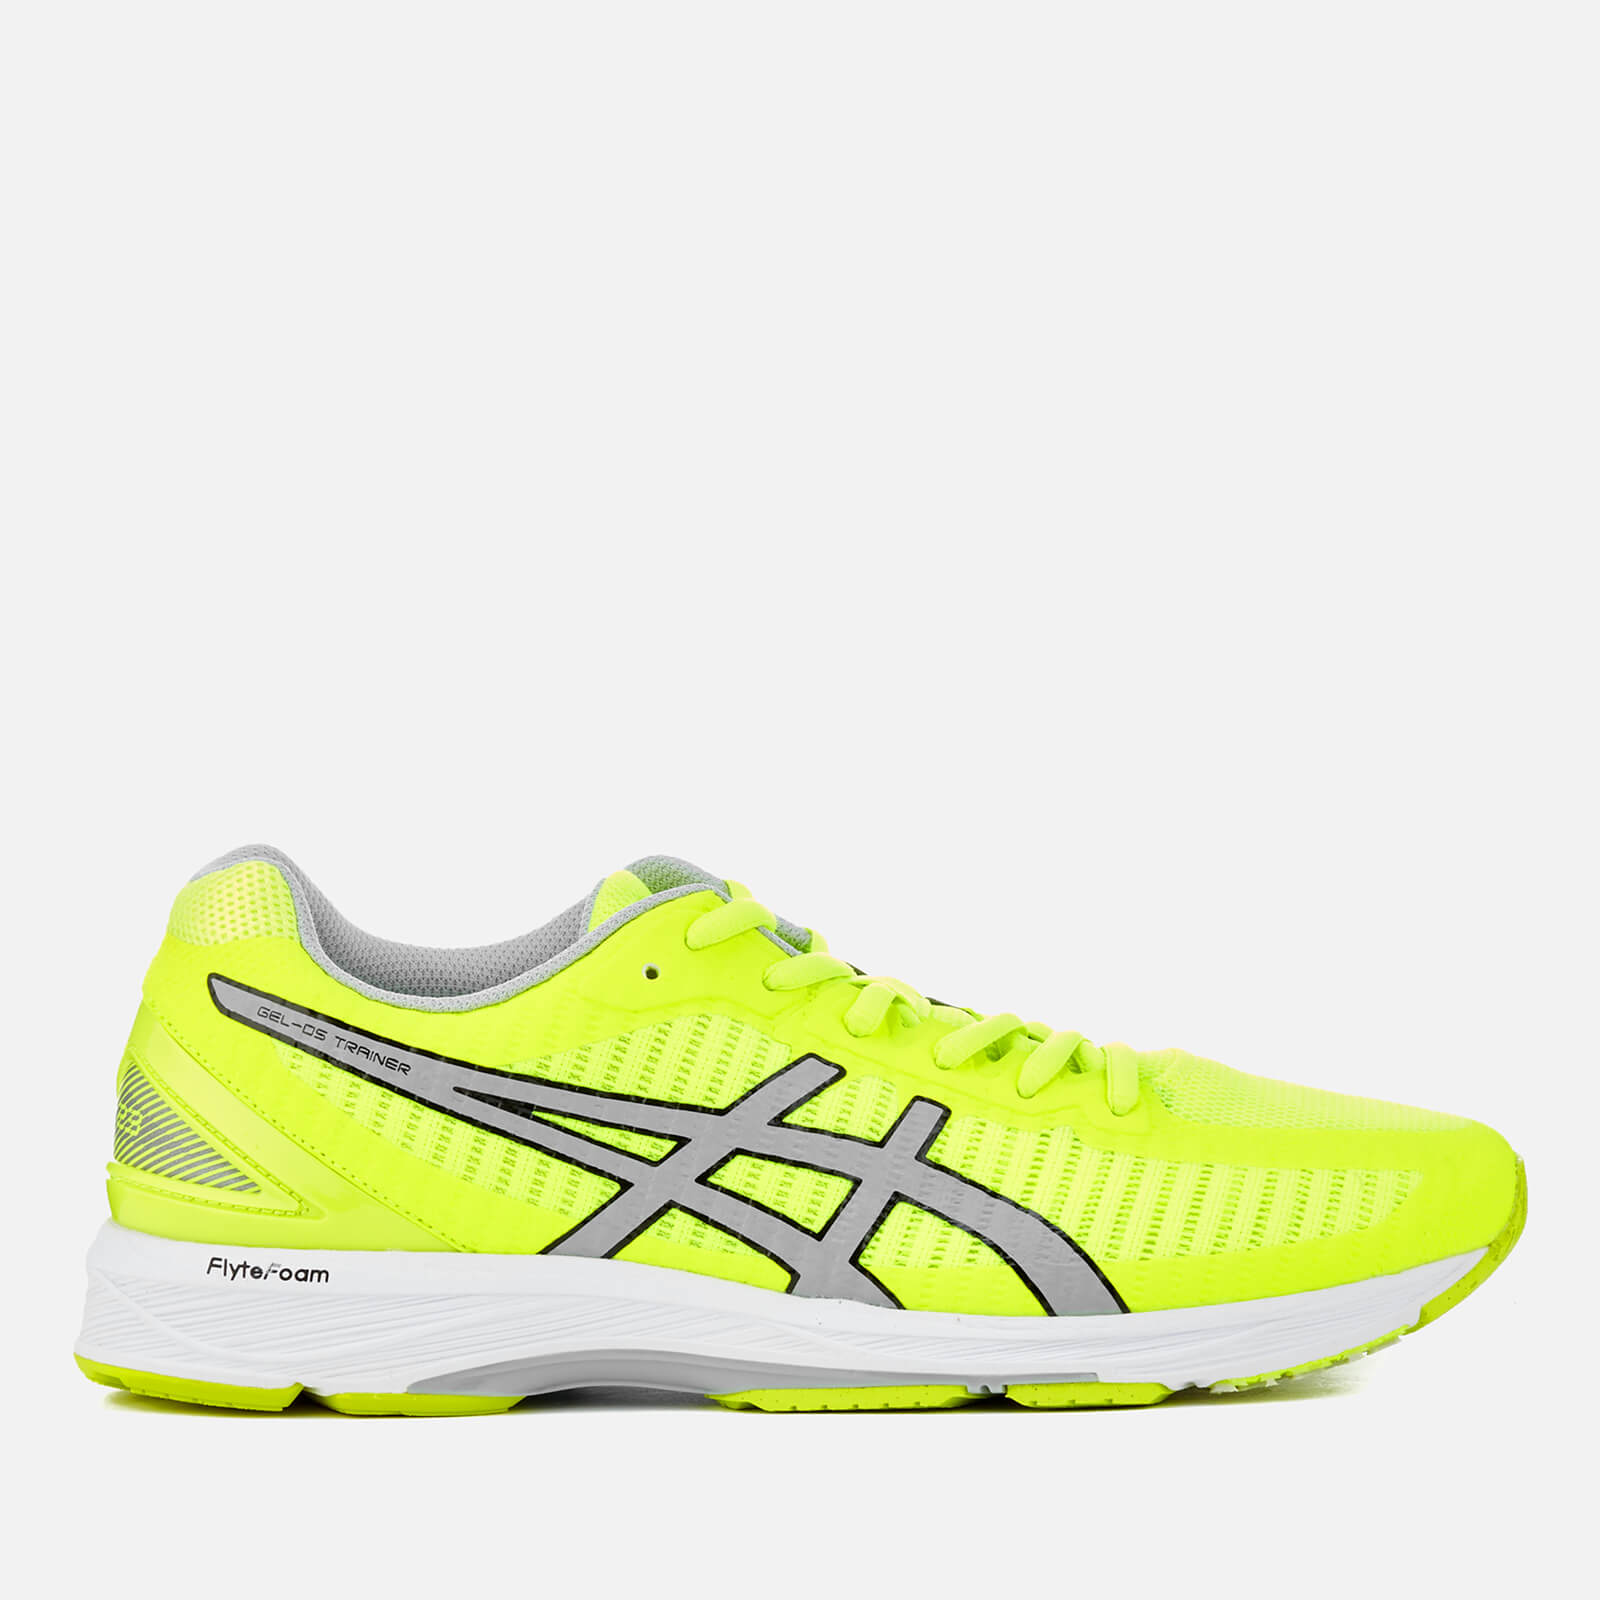 c2bb95c8495dc Asics Men's Running Gel-DS Trainer 23 Trainers - Safety Yellow/Mid  Grey/White | ProBikeKit.com